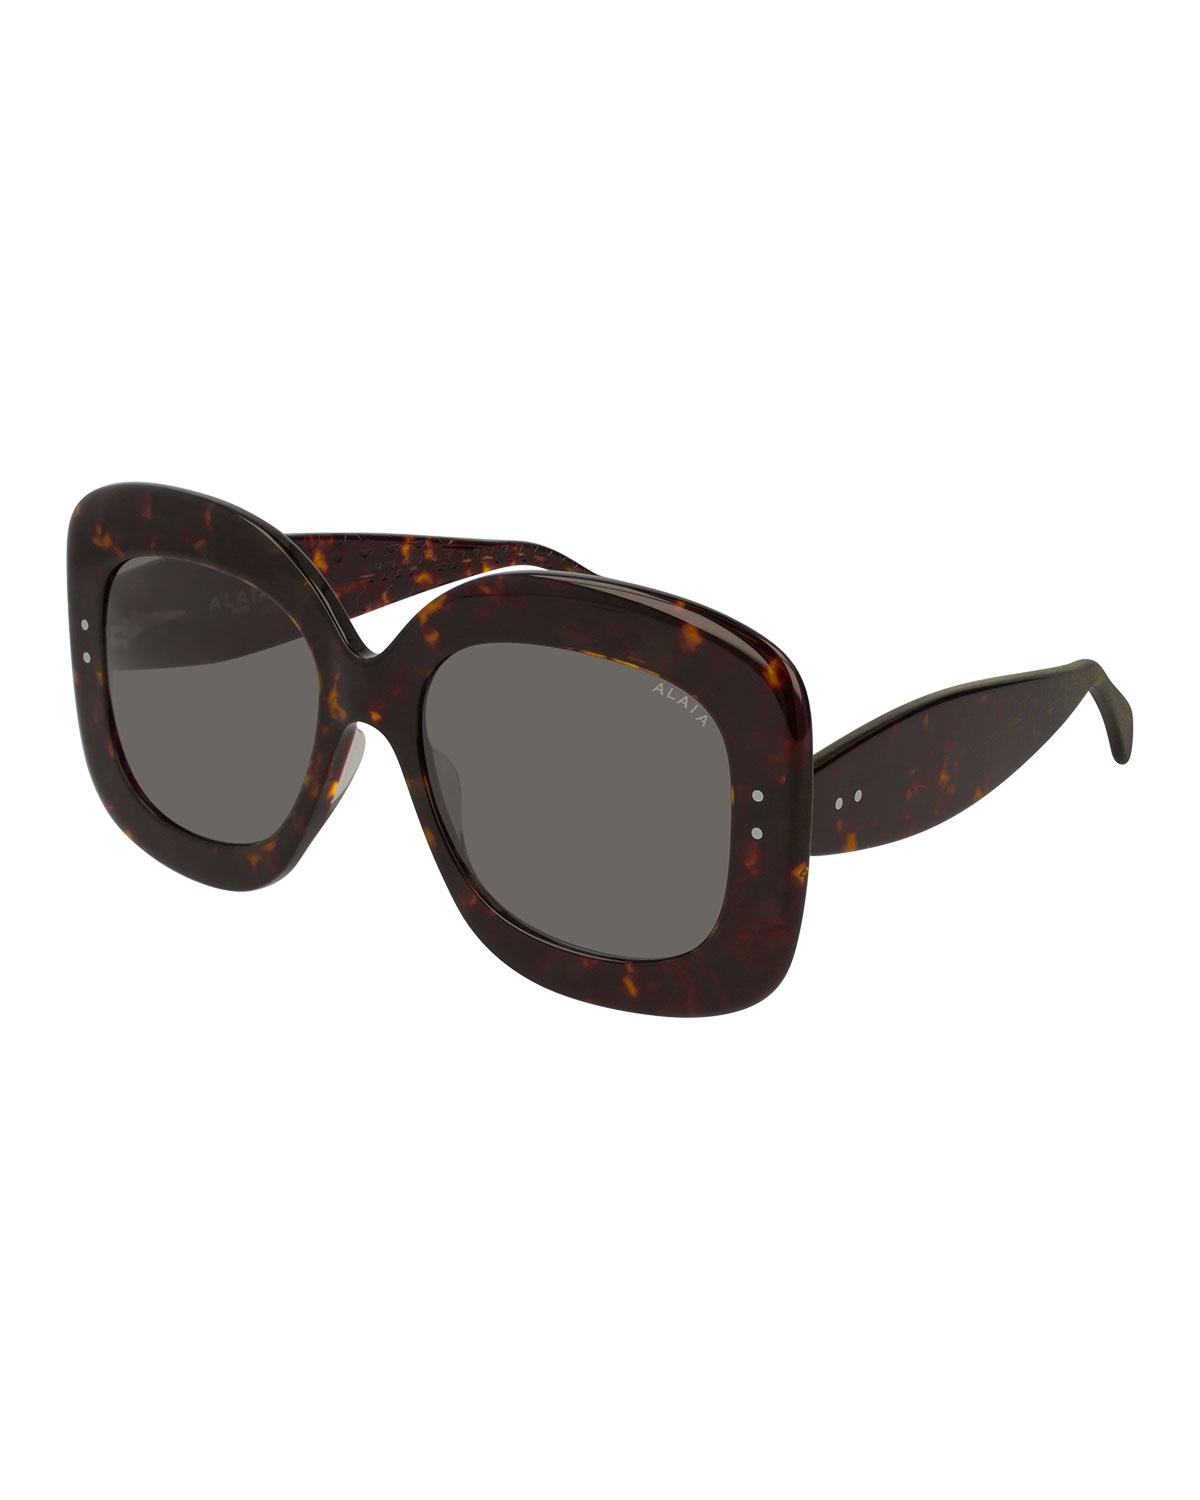 Alaïa Sunglasses SQUARE ACETATE SUNGLASSES